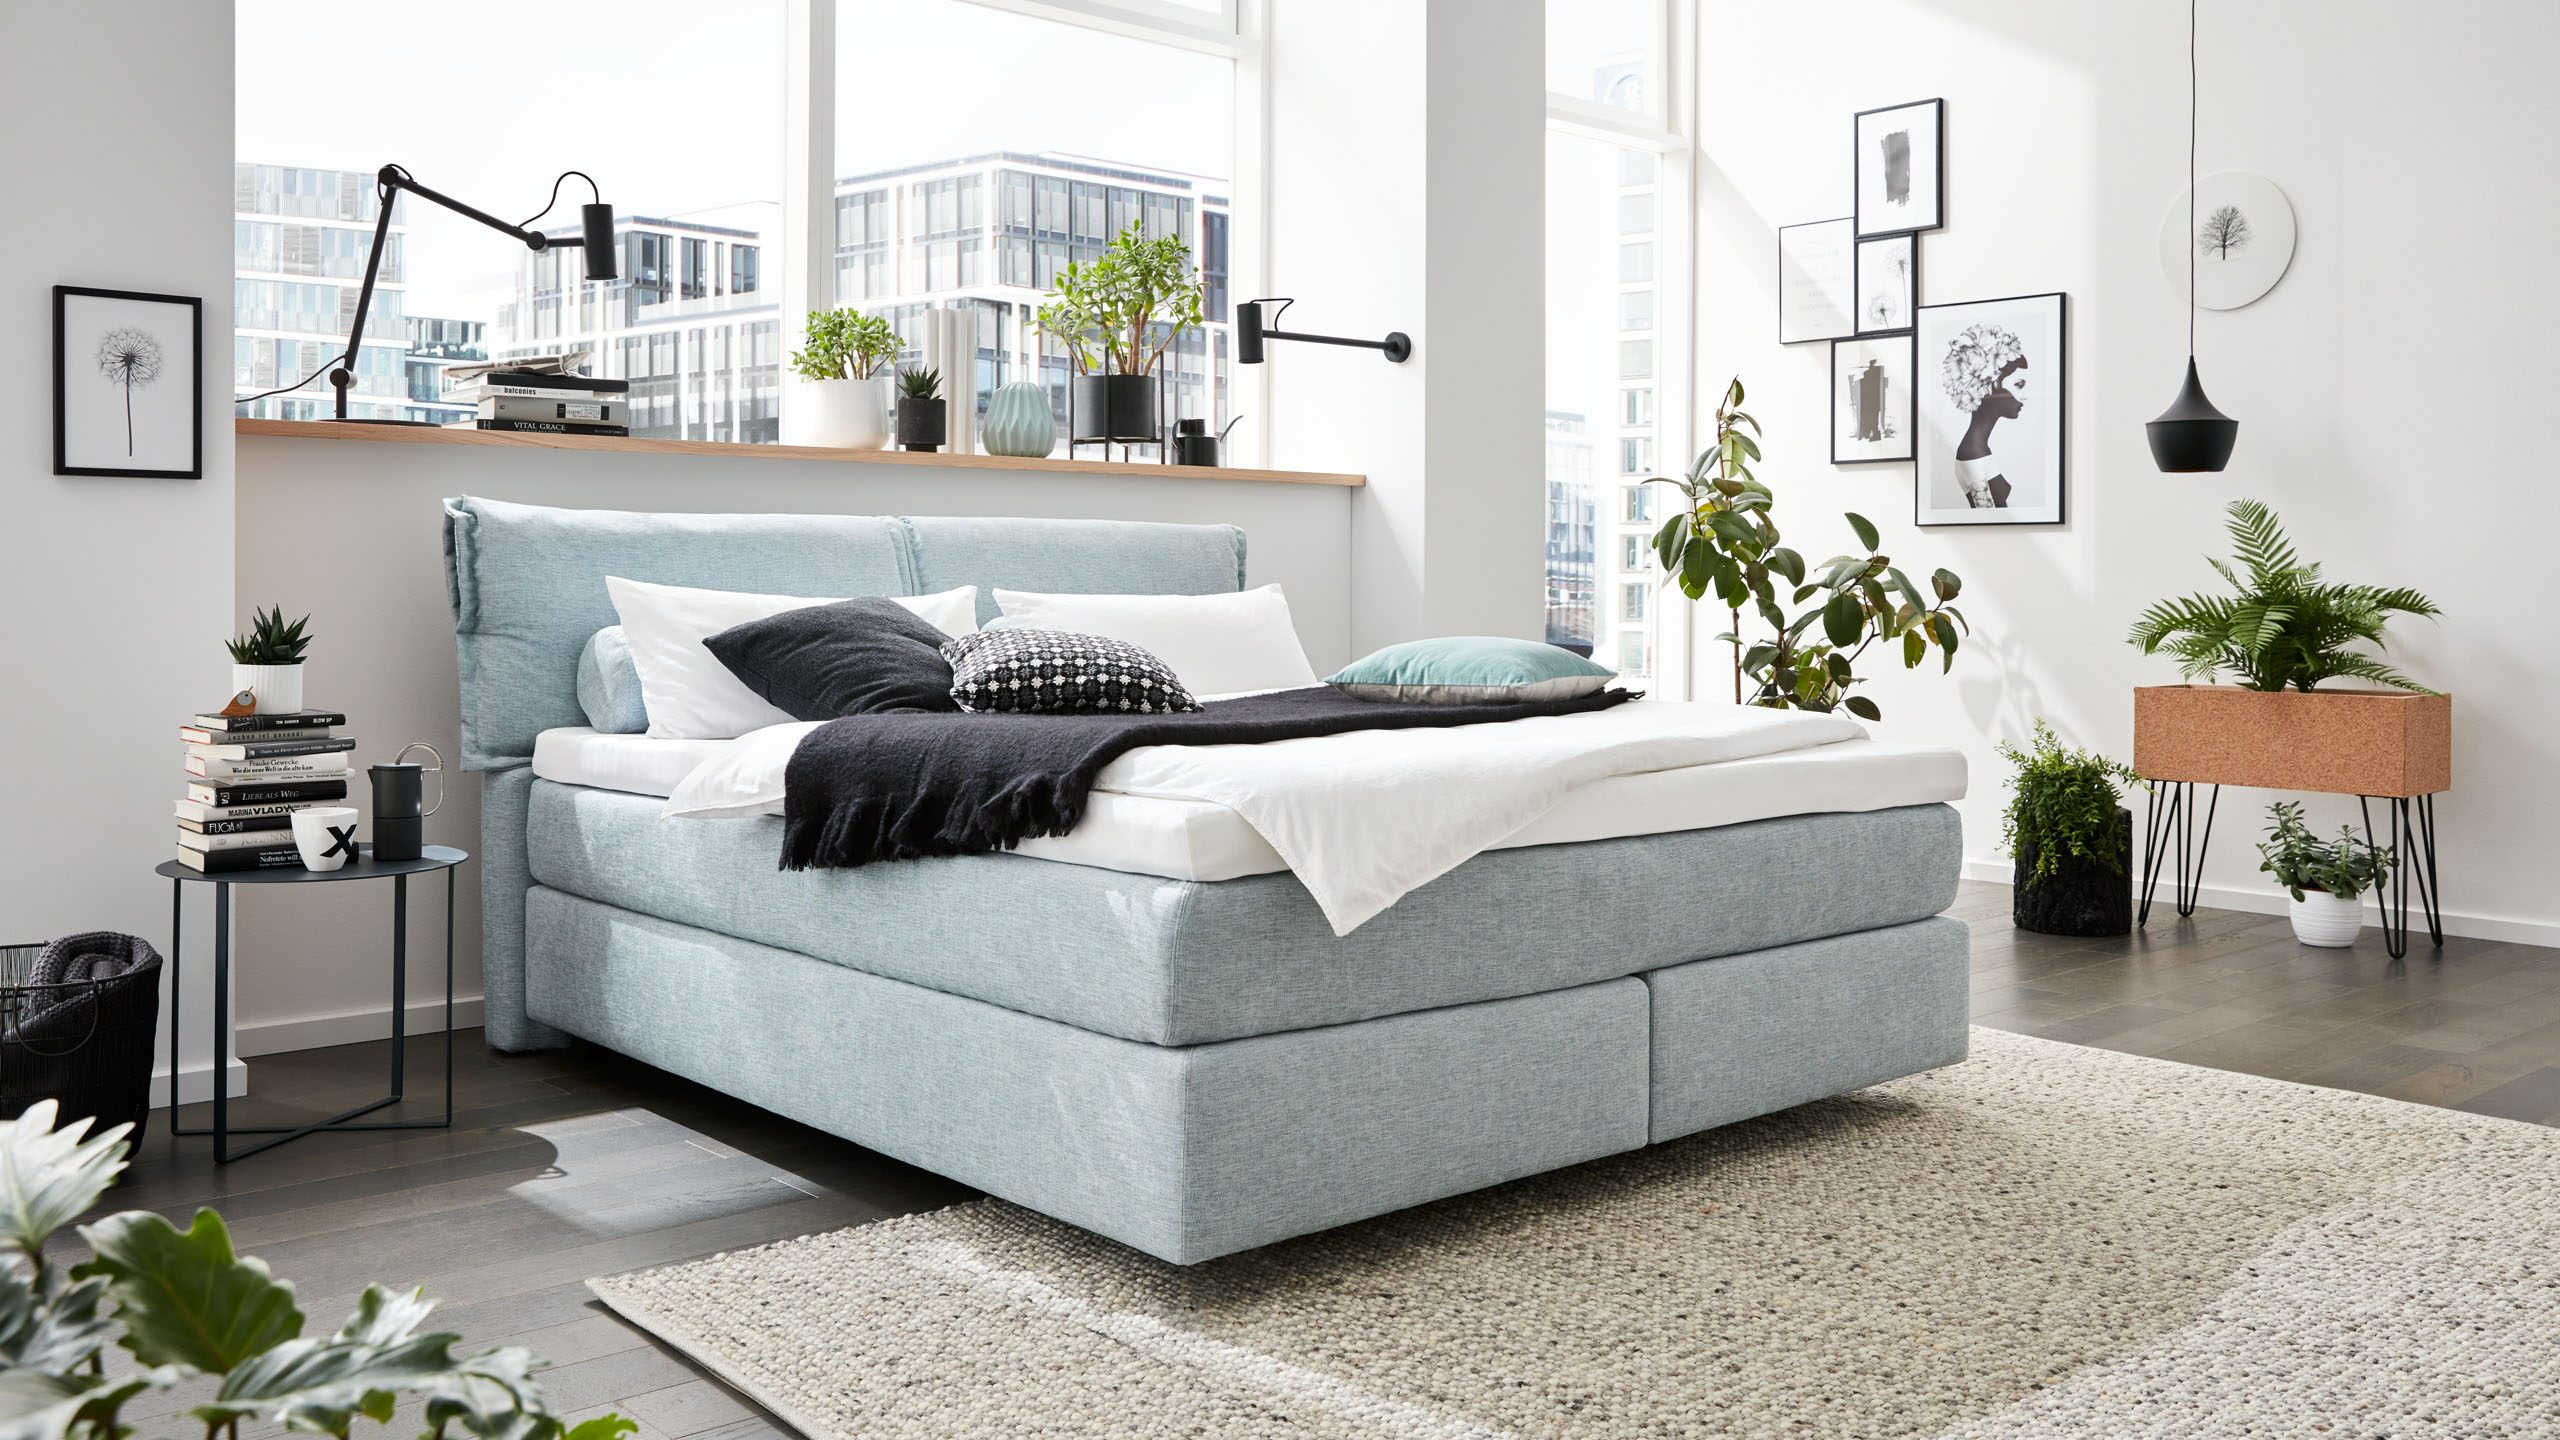 Interliving Boxspring Bett Serie 1410